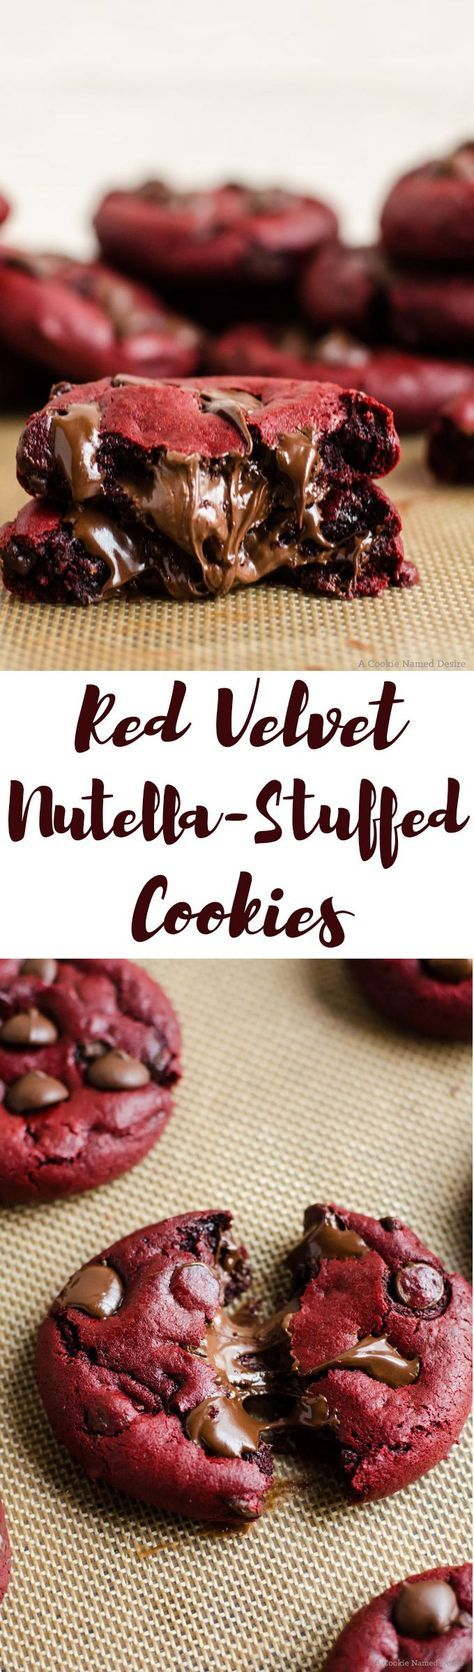 red velvet nutella stuffed cookies. These cookies are EVERYTHING! This recipe also gives a nice tip on how to stuff the nutella inside the cookies.